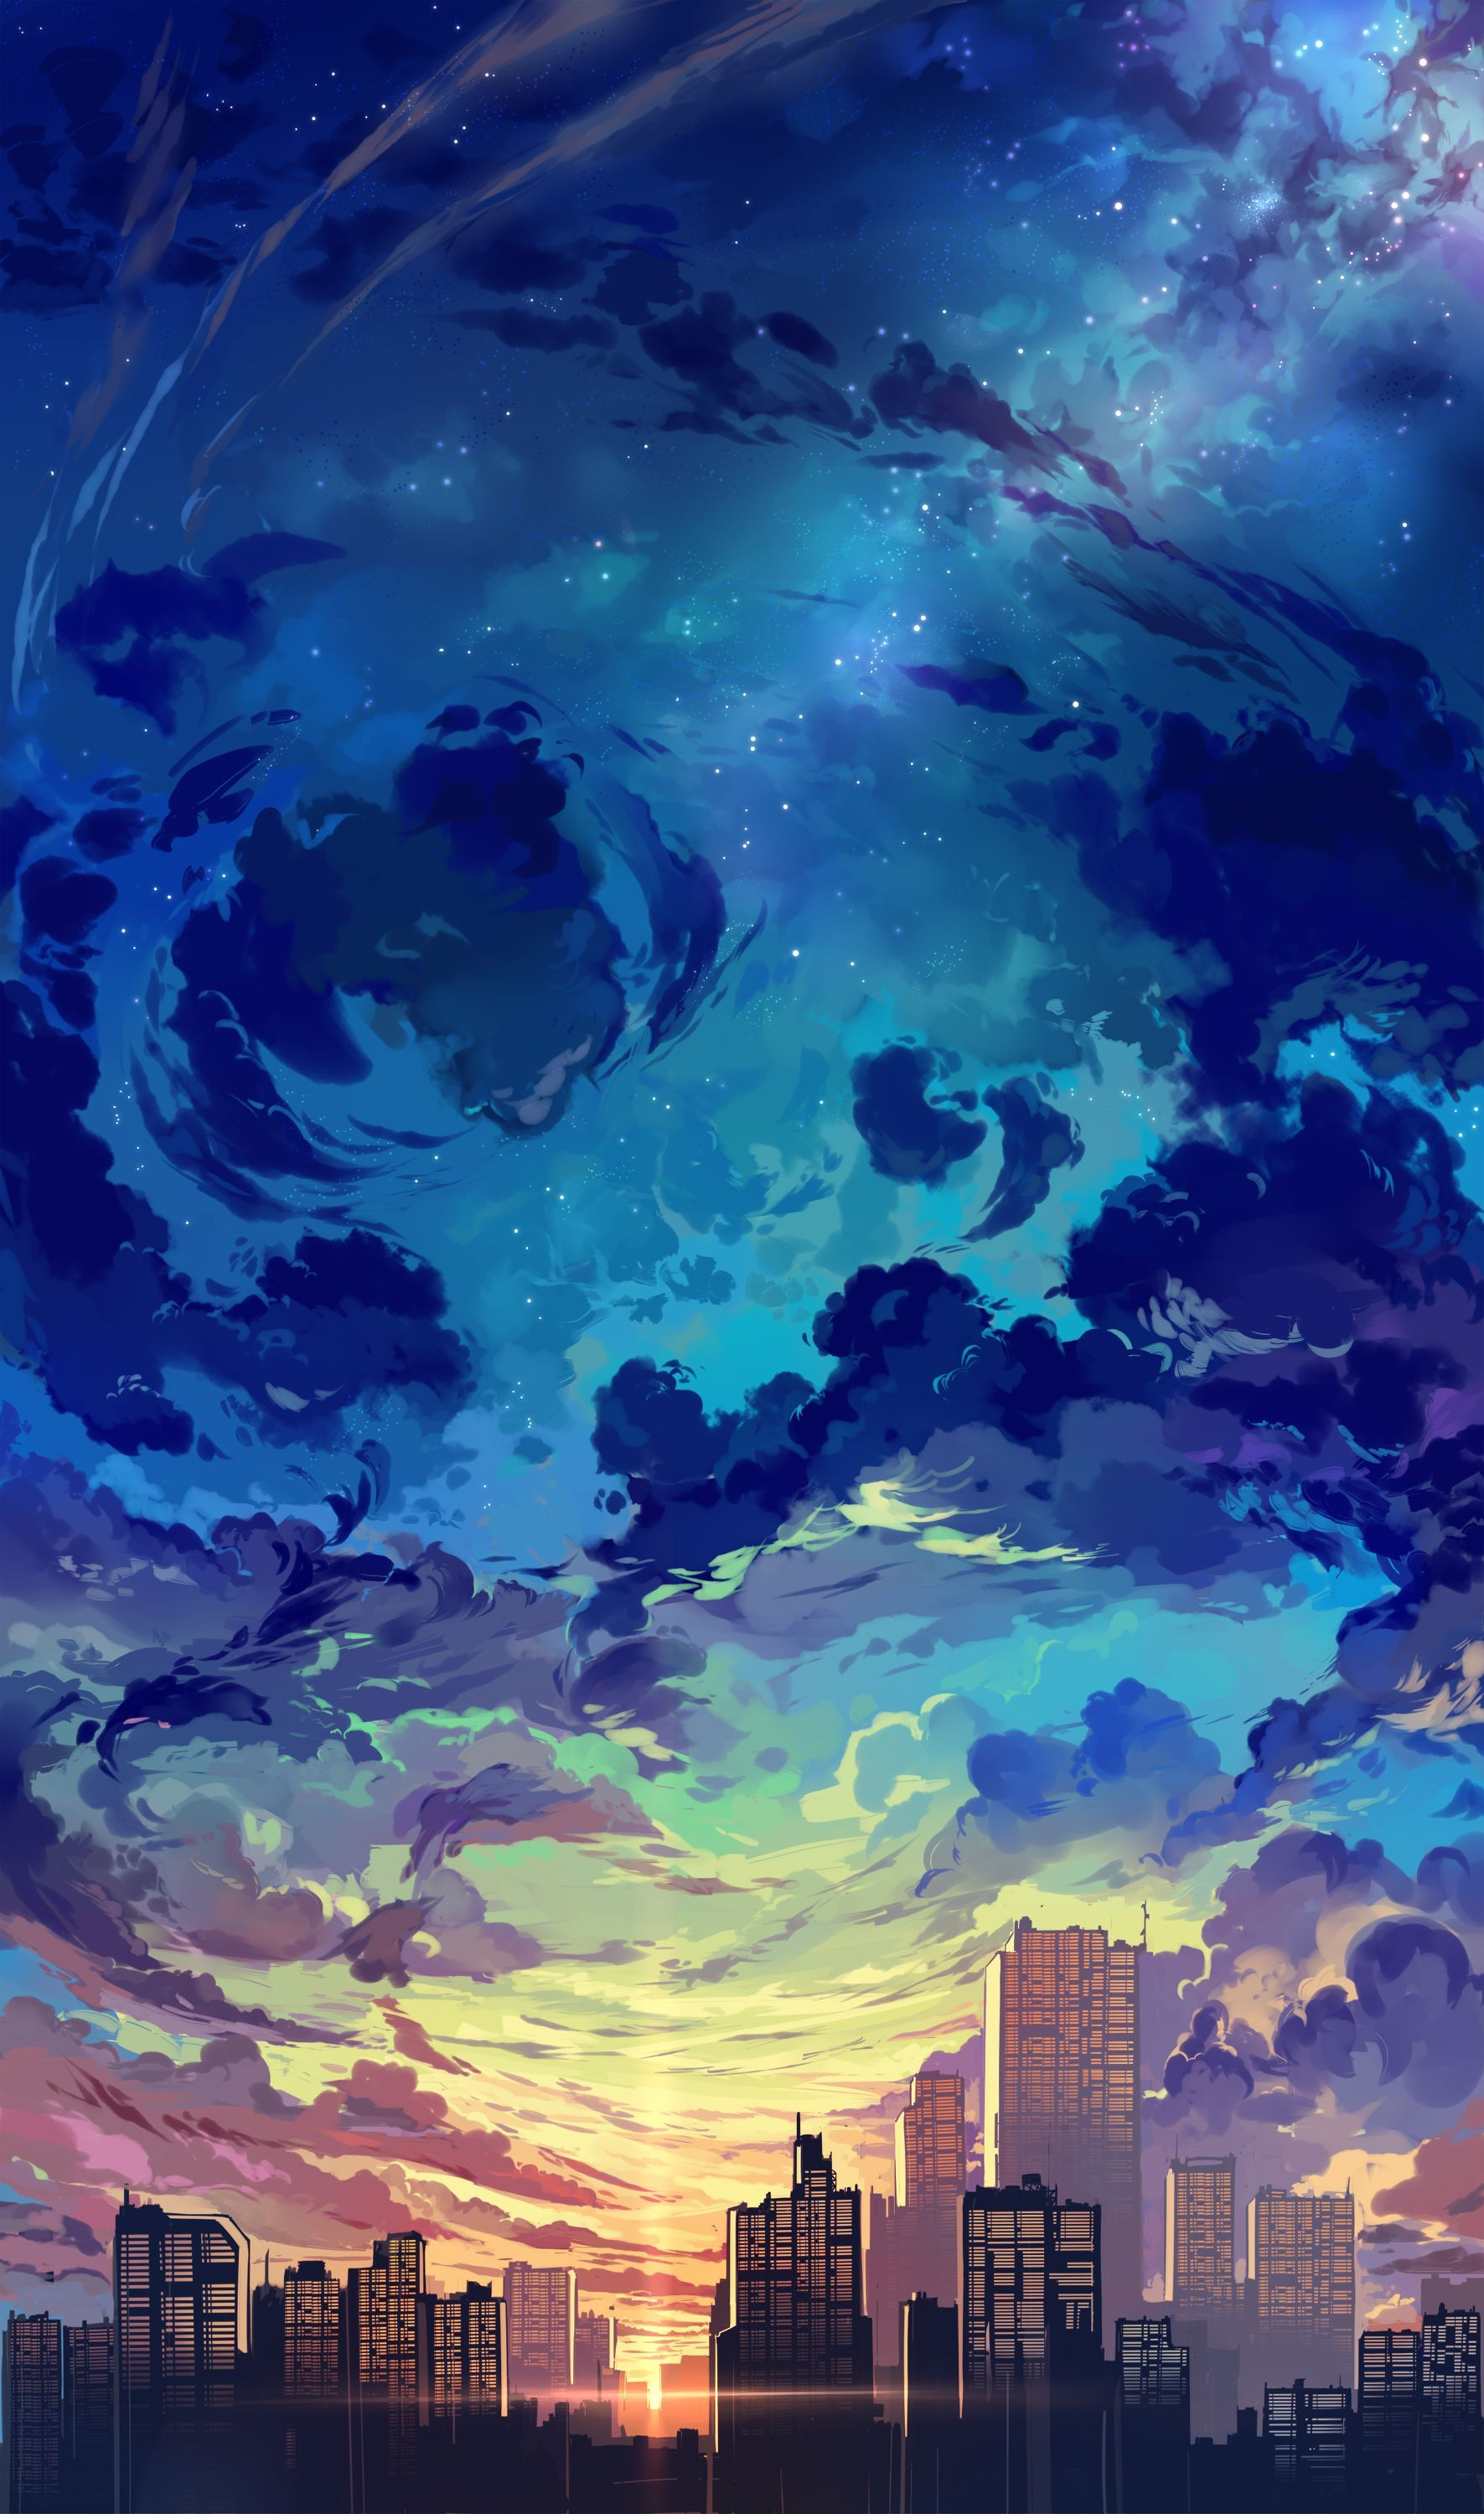 Anime Aesthetic Android Wallpapers ...